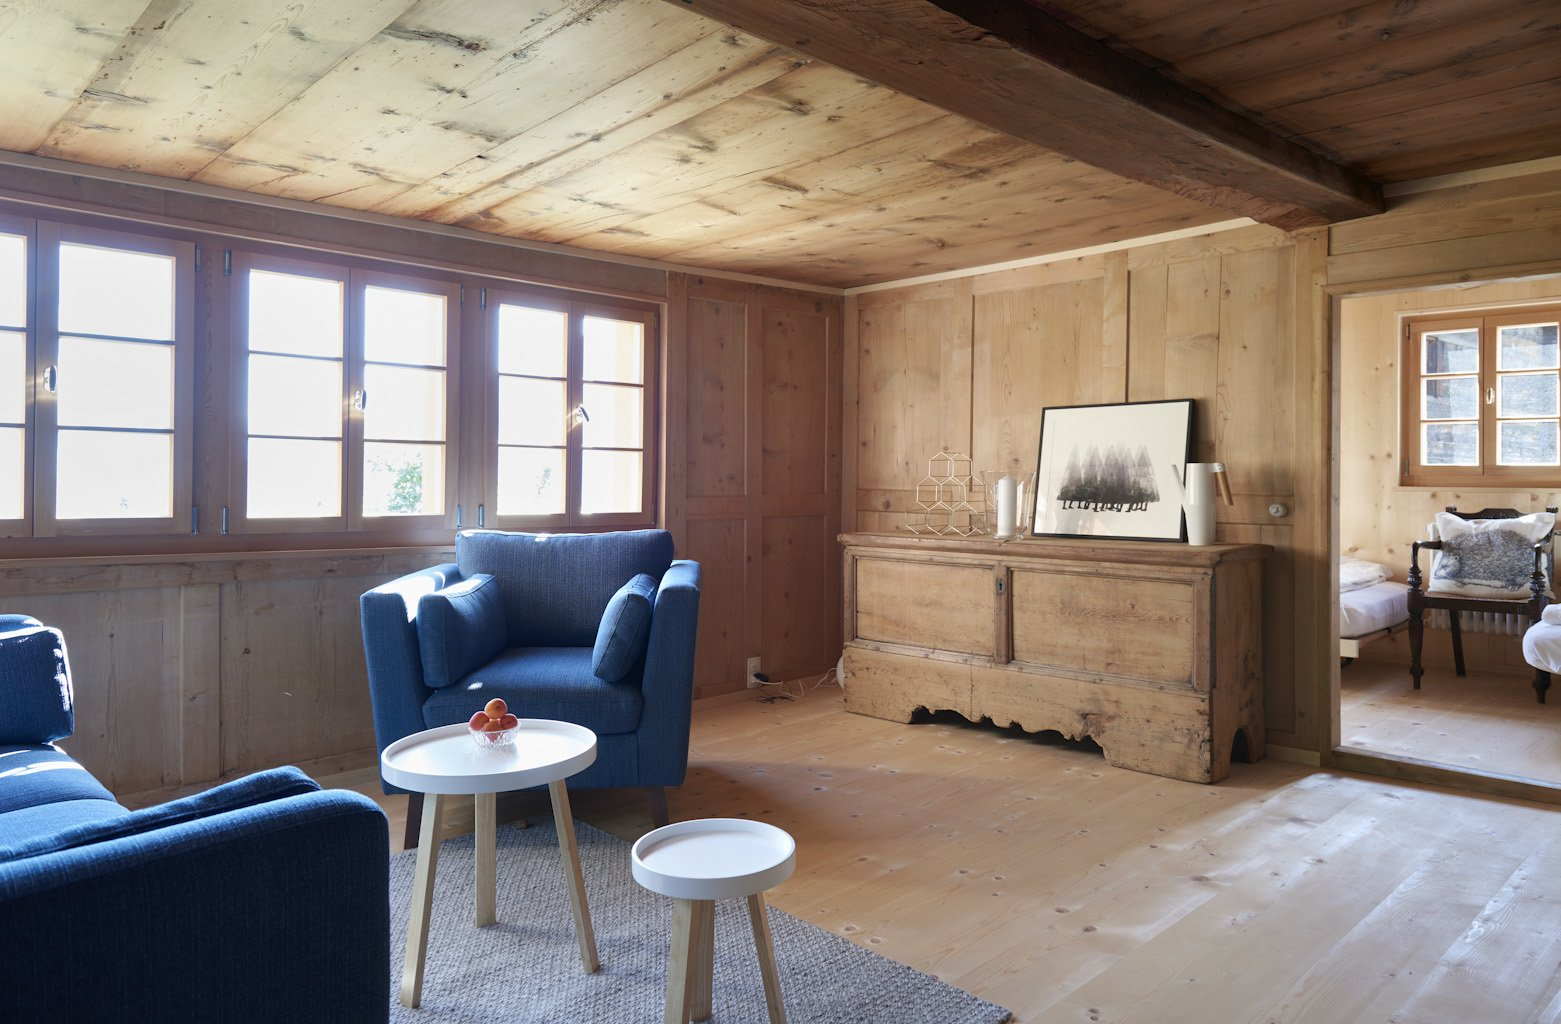 Living Room, Console Tables, Sofa, Chair, Light Hardwood Floor, and Coffee Tables  Photo 10 of 13 in A Renovated Pagan House in the Swiss Alps Puts Guests in Touch With the Past